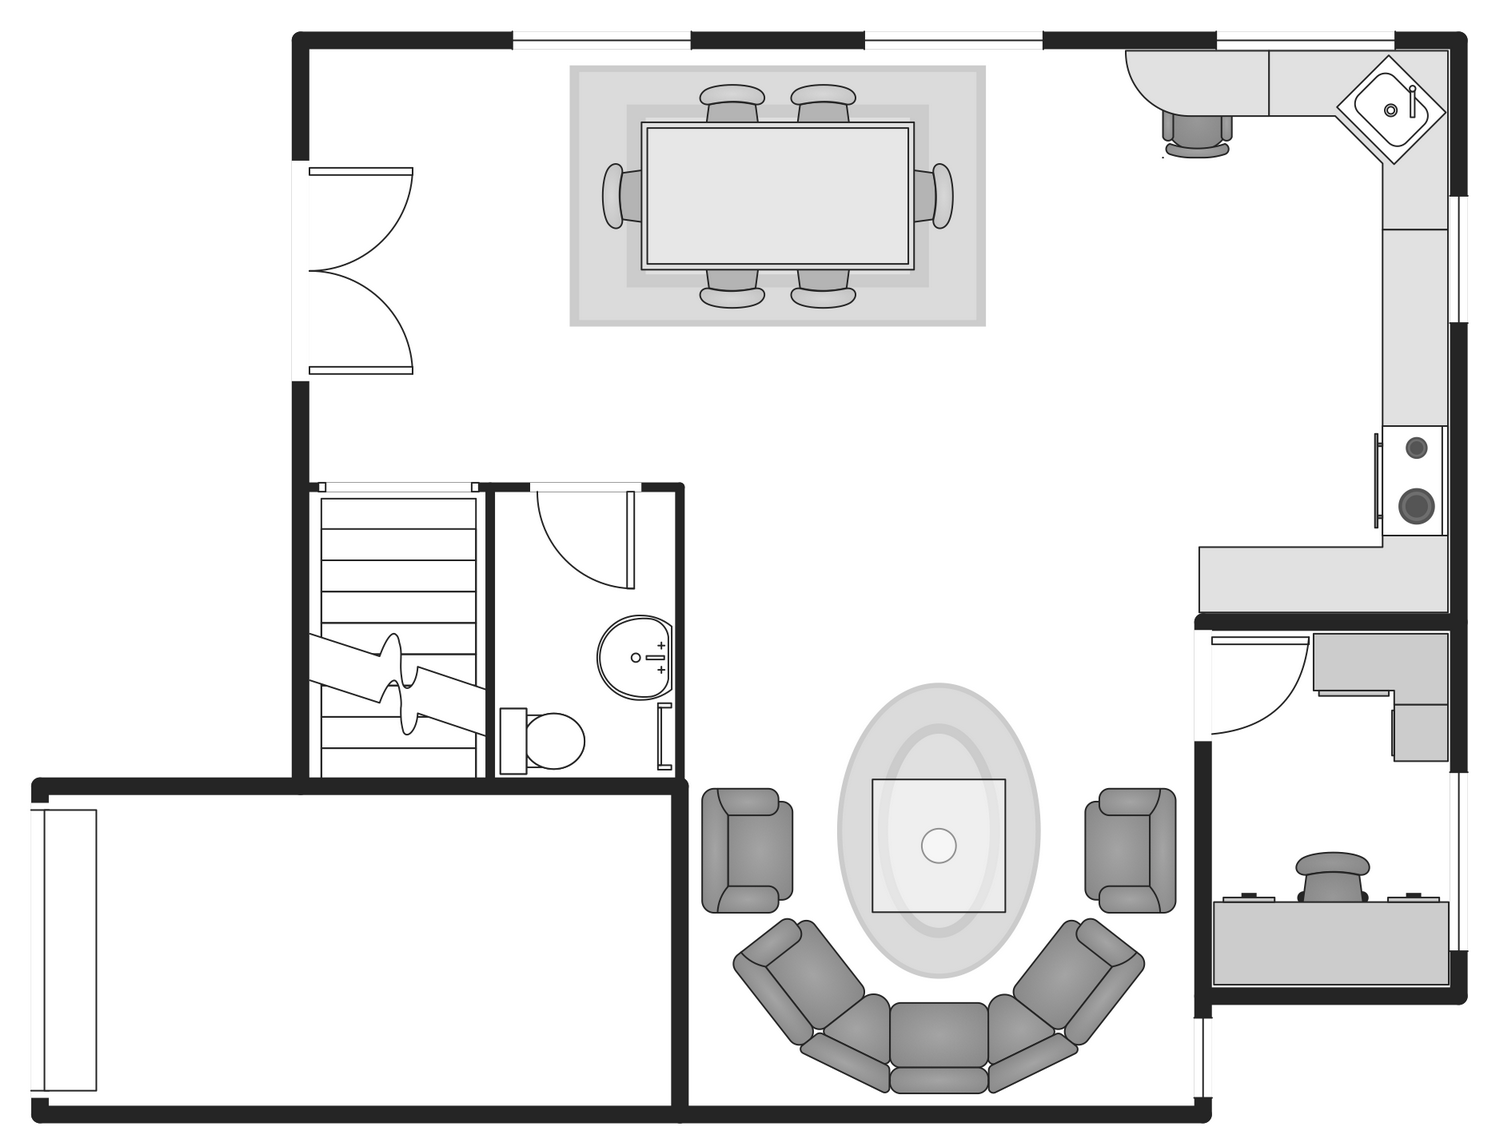 New basic floor plans solution for complete building design Easy floor plan drawing